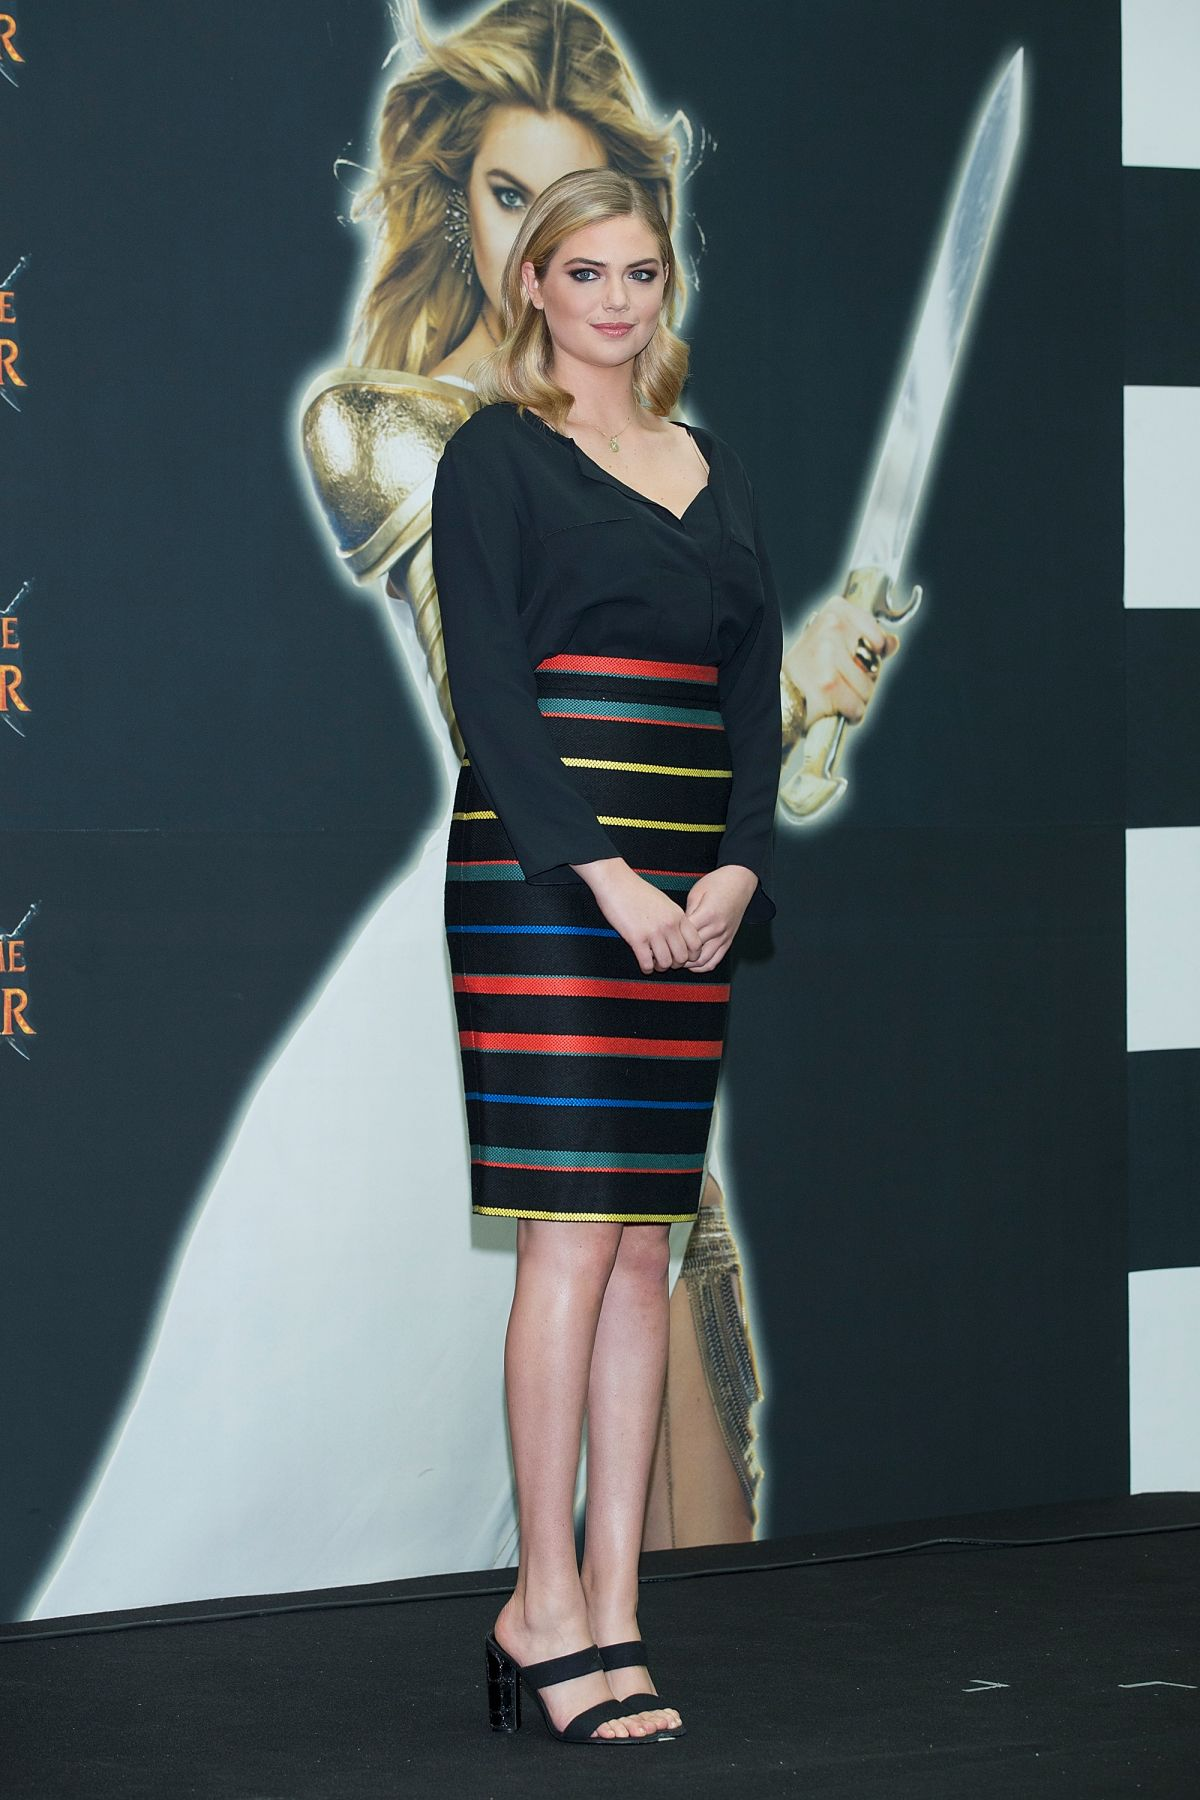 Kate upton at game of war fire age promotion in seoul 2 jpg